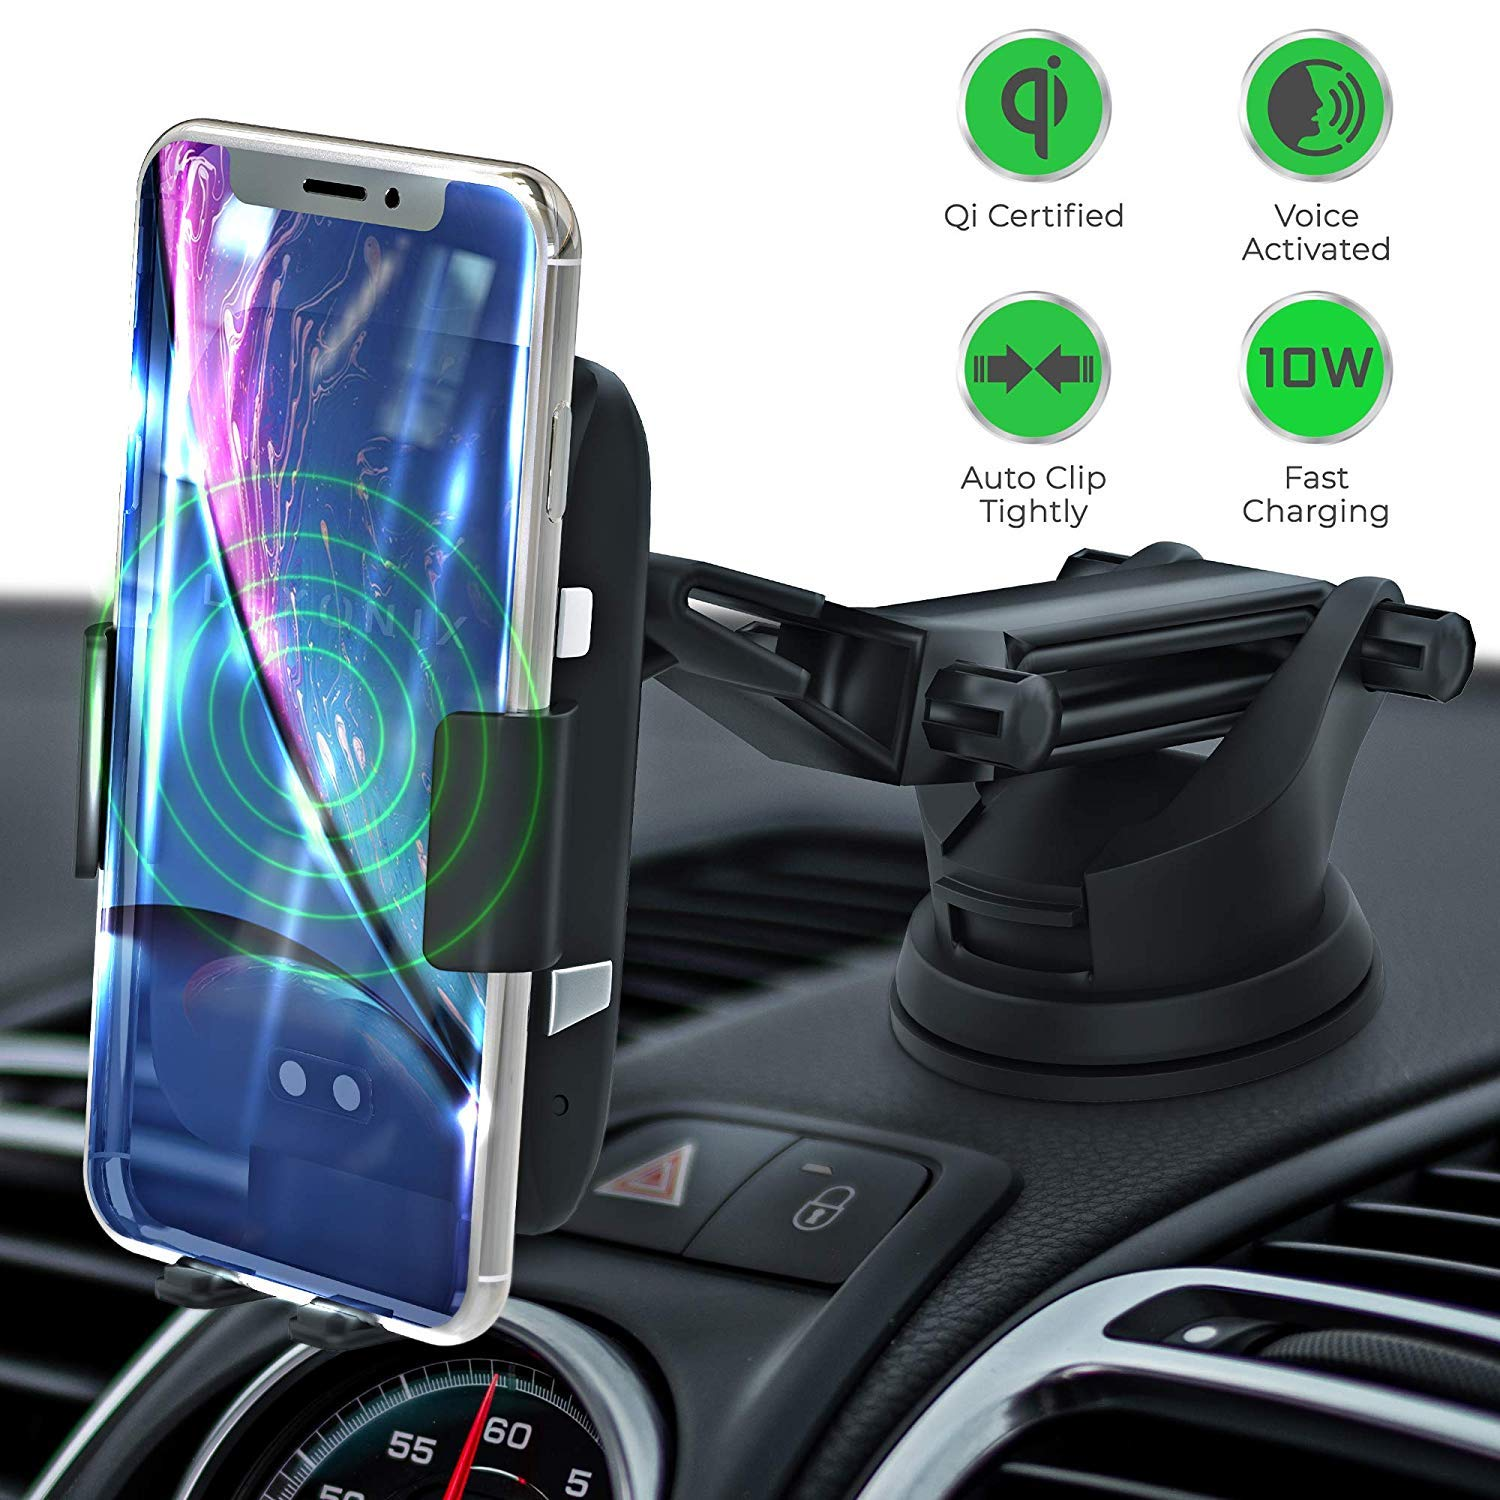 LEXONIX Wireless Car Charger Mount, Qi Wireless Car Charger Fast Charging Phone Holder for Car, Provides 10w for Samsung Galaxy S10 /S10+/S9 /S9+/S8 /S8+ or 7.5w iPhone Xs/Xs Max/XR/X/ 8/8 Plus by LEXONIX